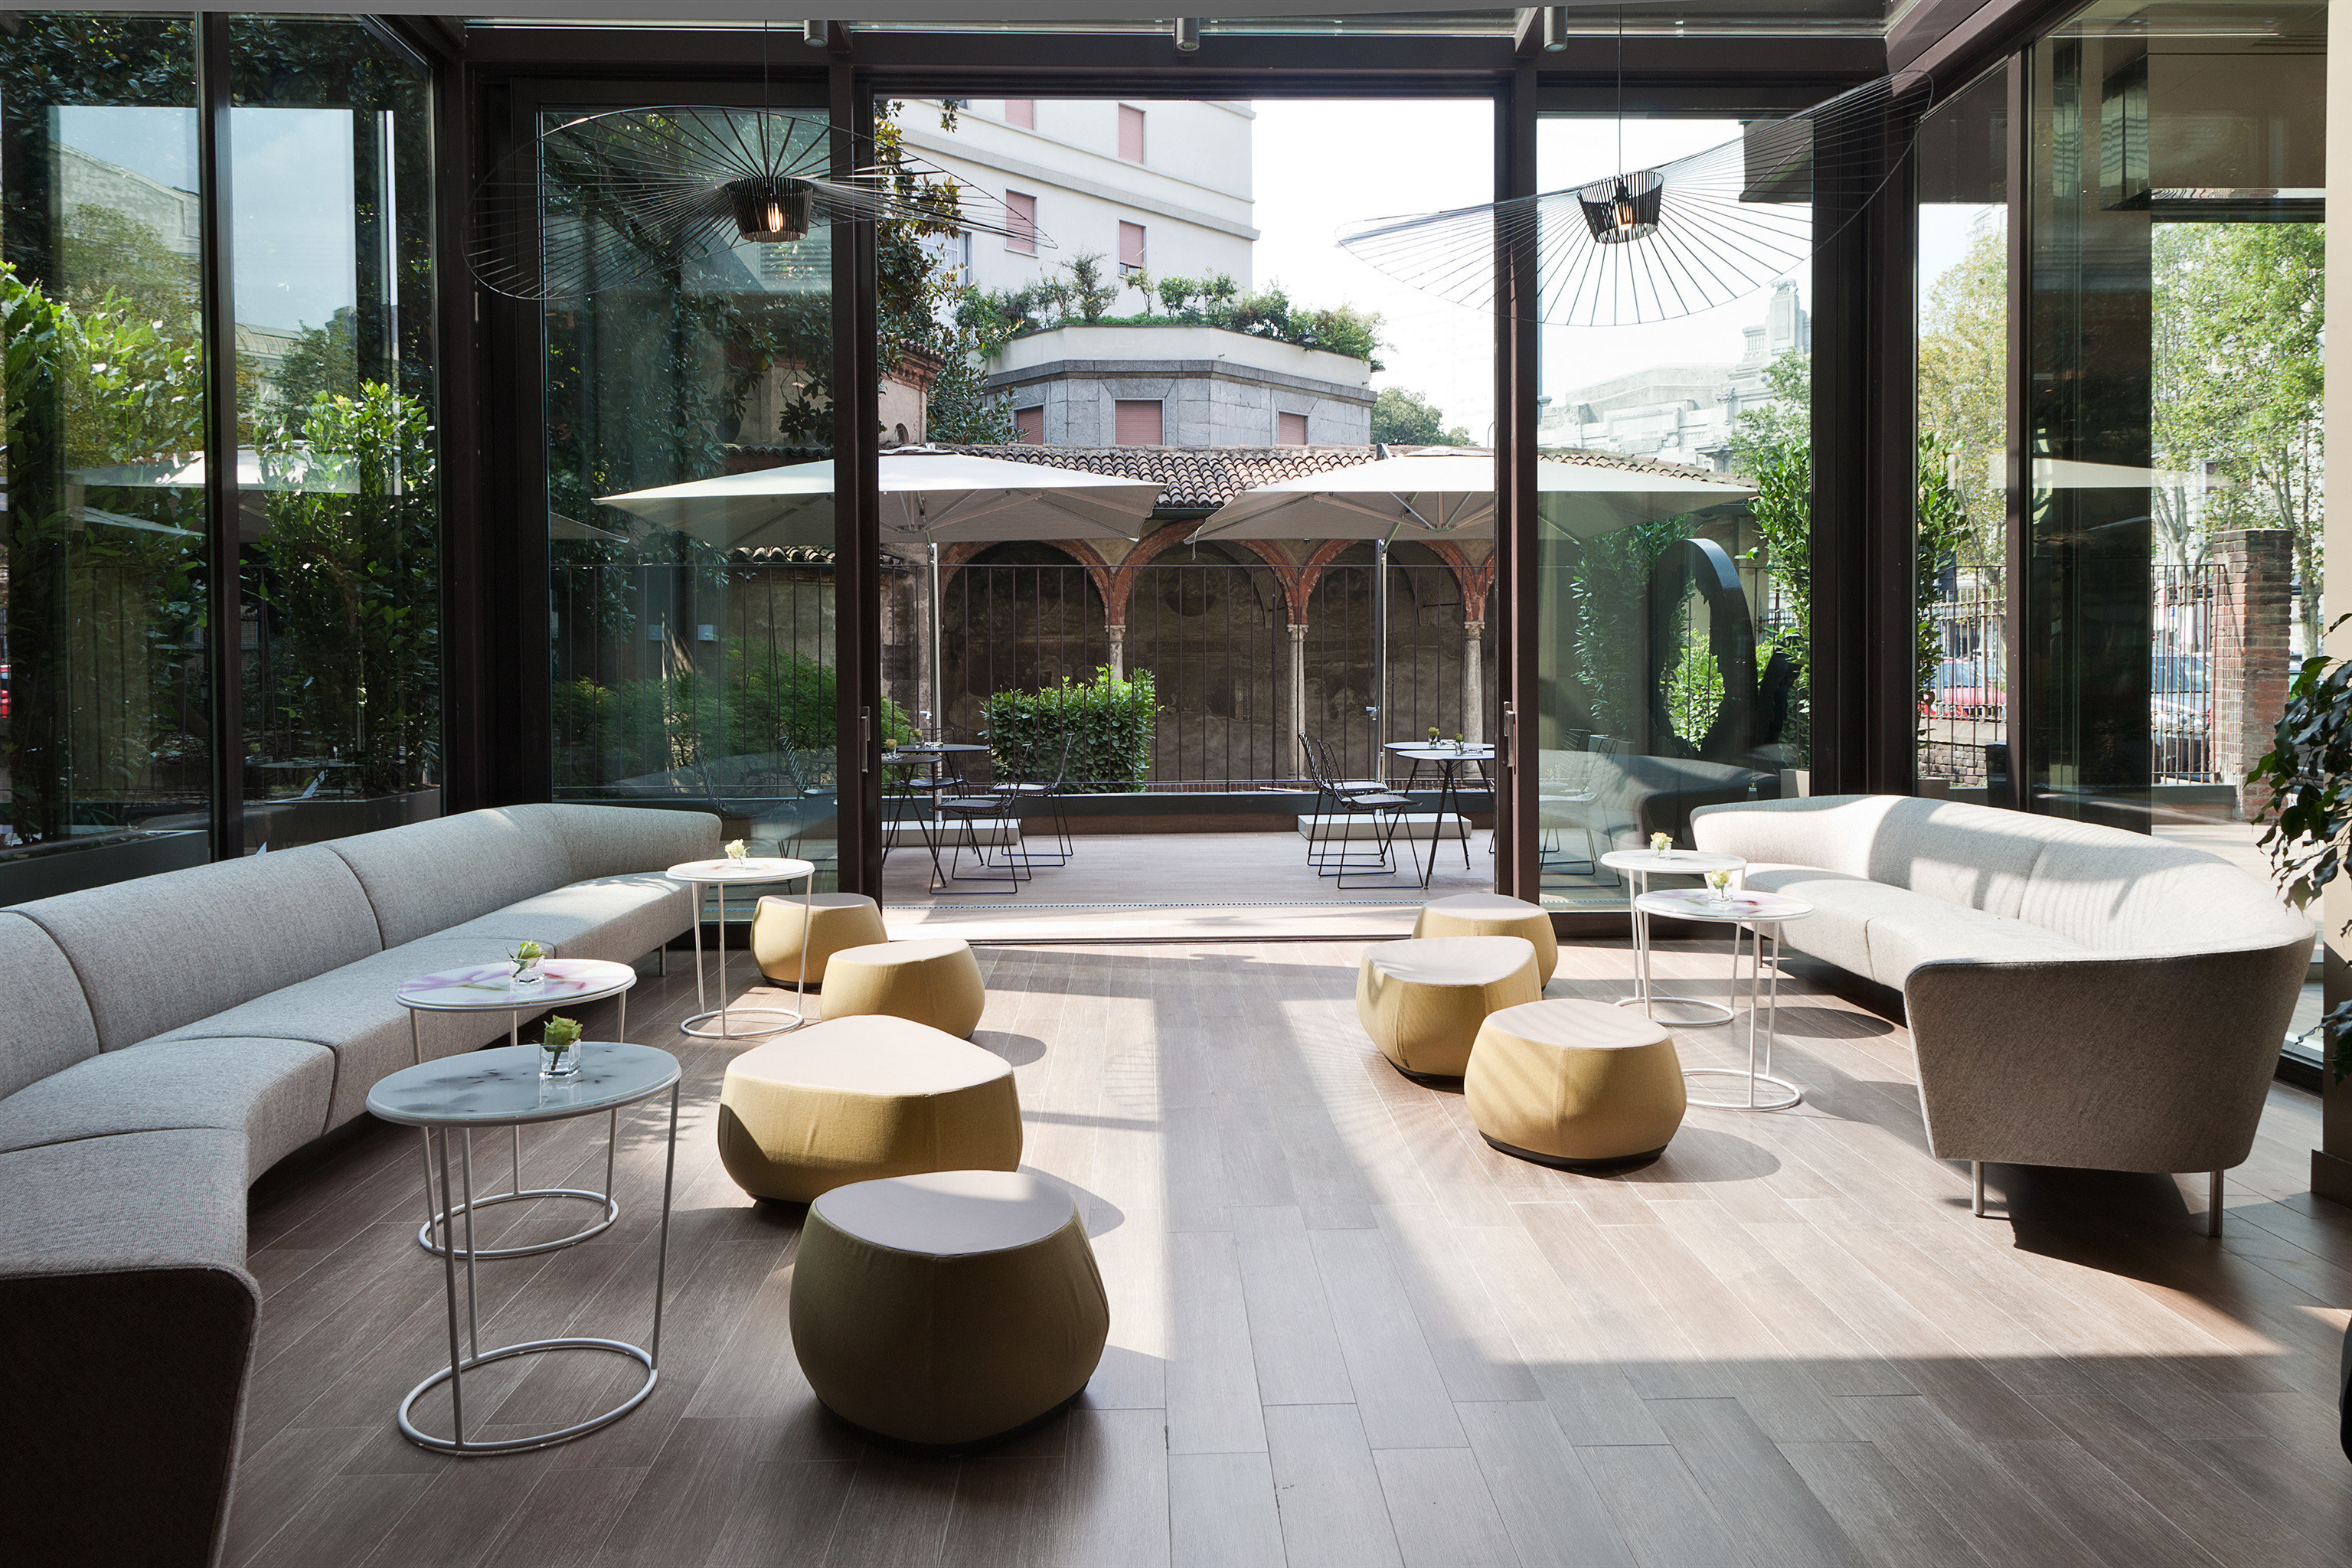 Business Lounge Modern property condominium living room outdoor structure home porch Lobby Courtyard backyard Patio orangery Villa overlooking stone